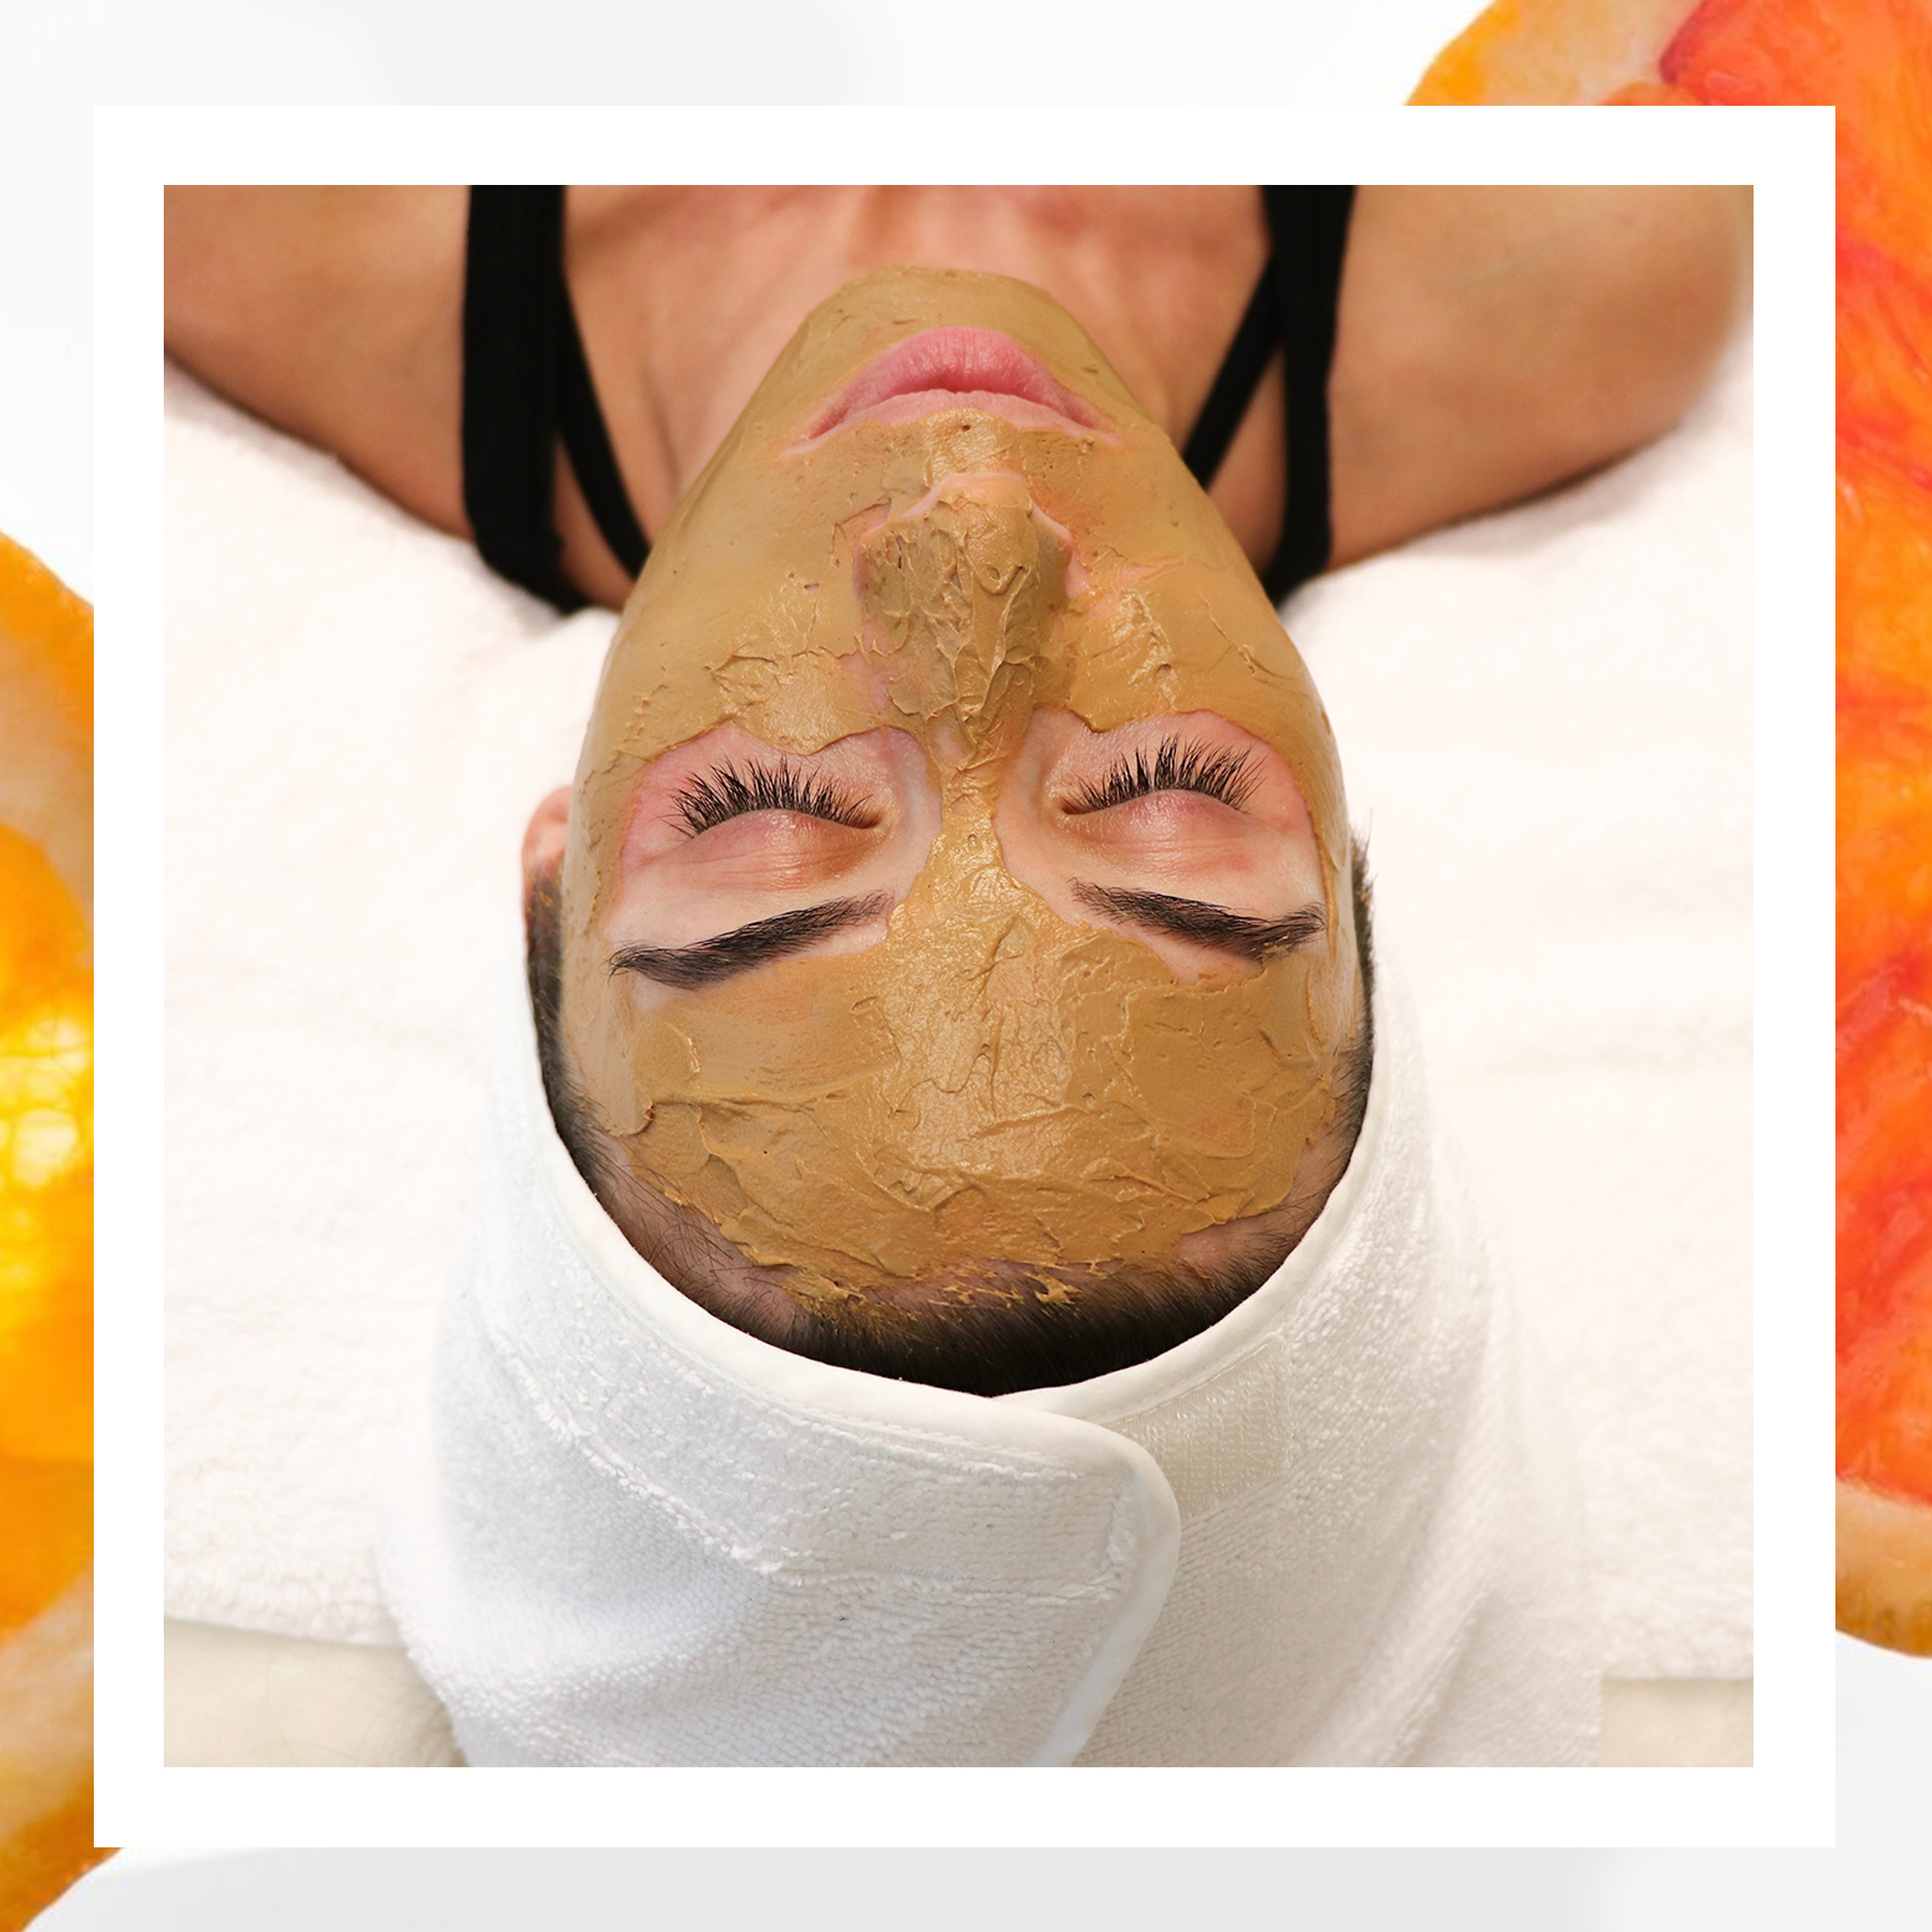 FACIALS & PEELS - Treat difficult skin conditions with our variety of facials and peels.